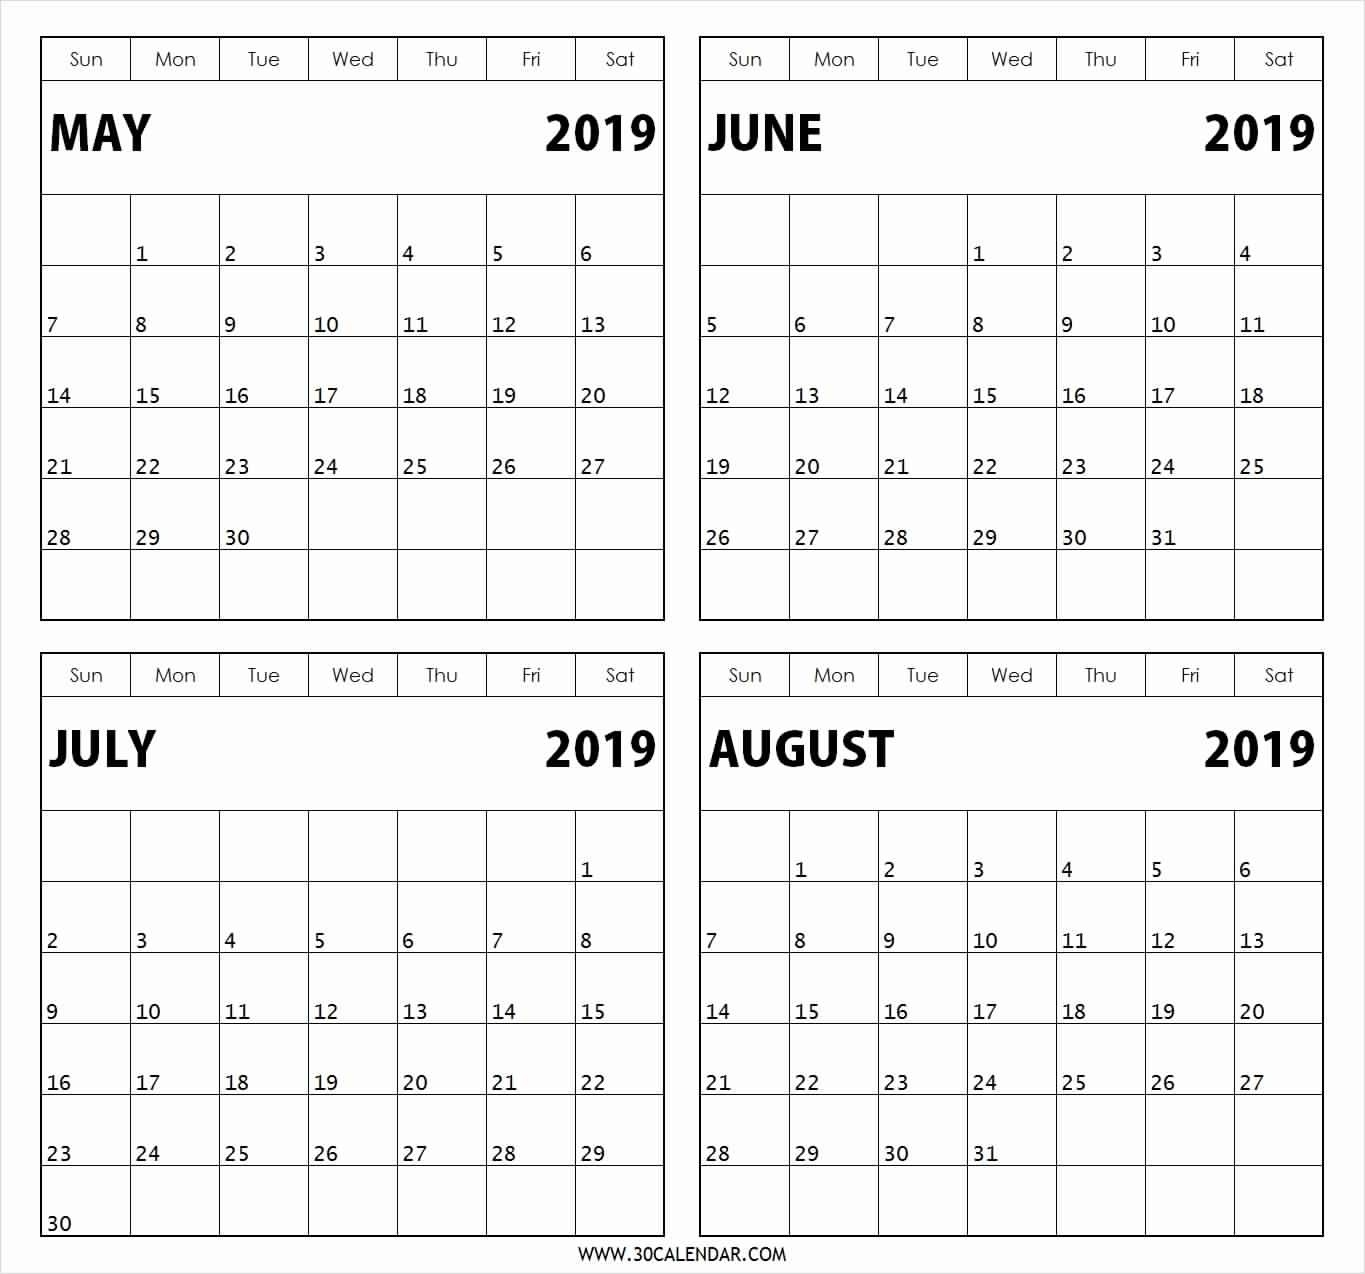 Printable Calendar 2019 2 Months Per Page | Printable-4-Monthly Print Calendars Templates 2020 Multiple Months Per Page